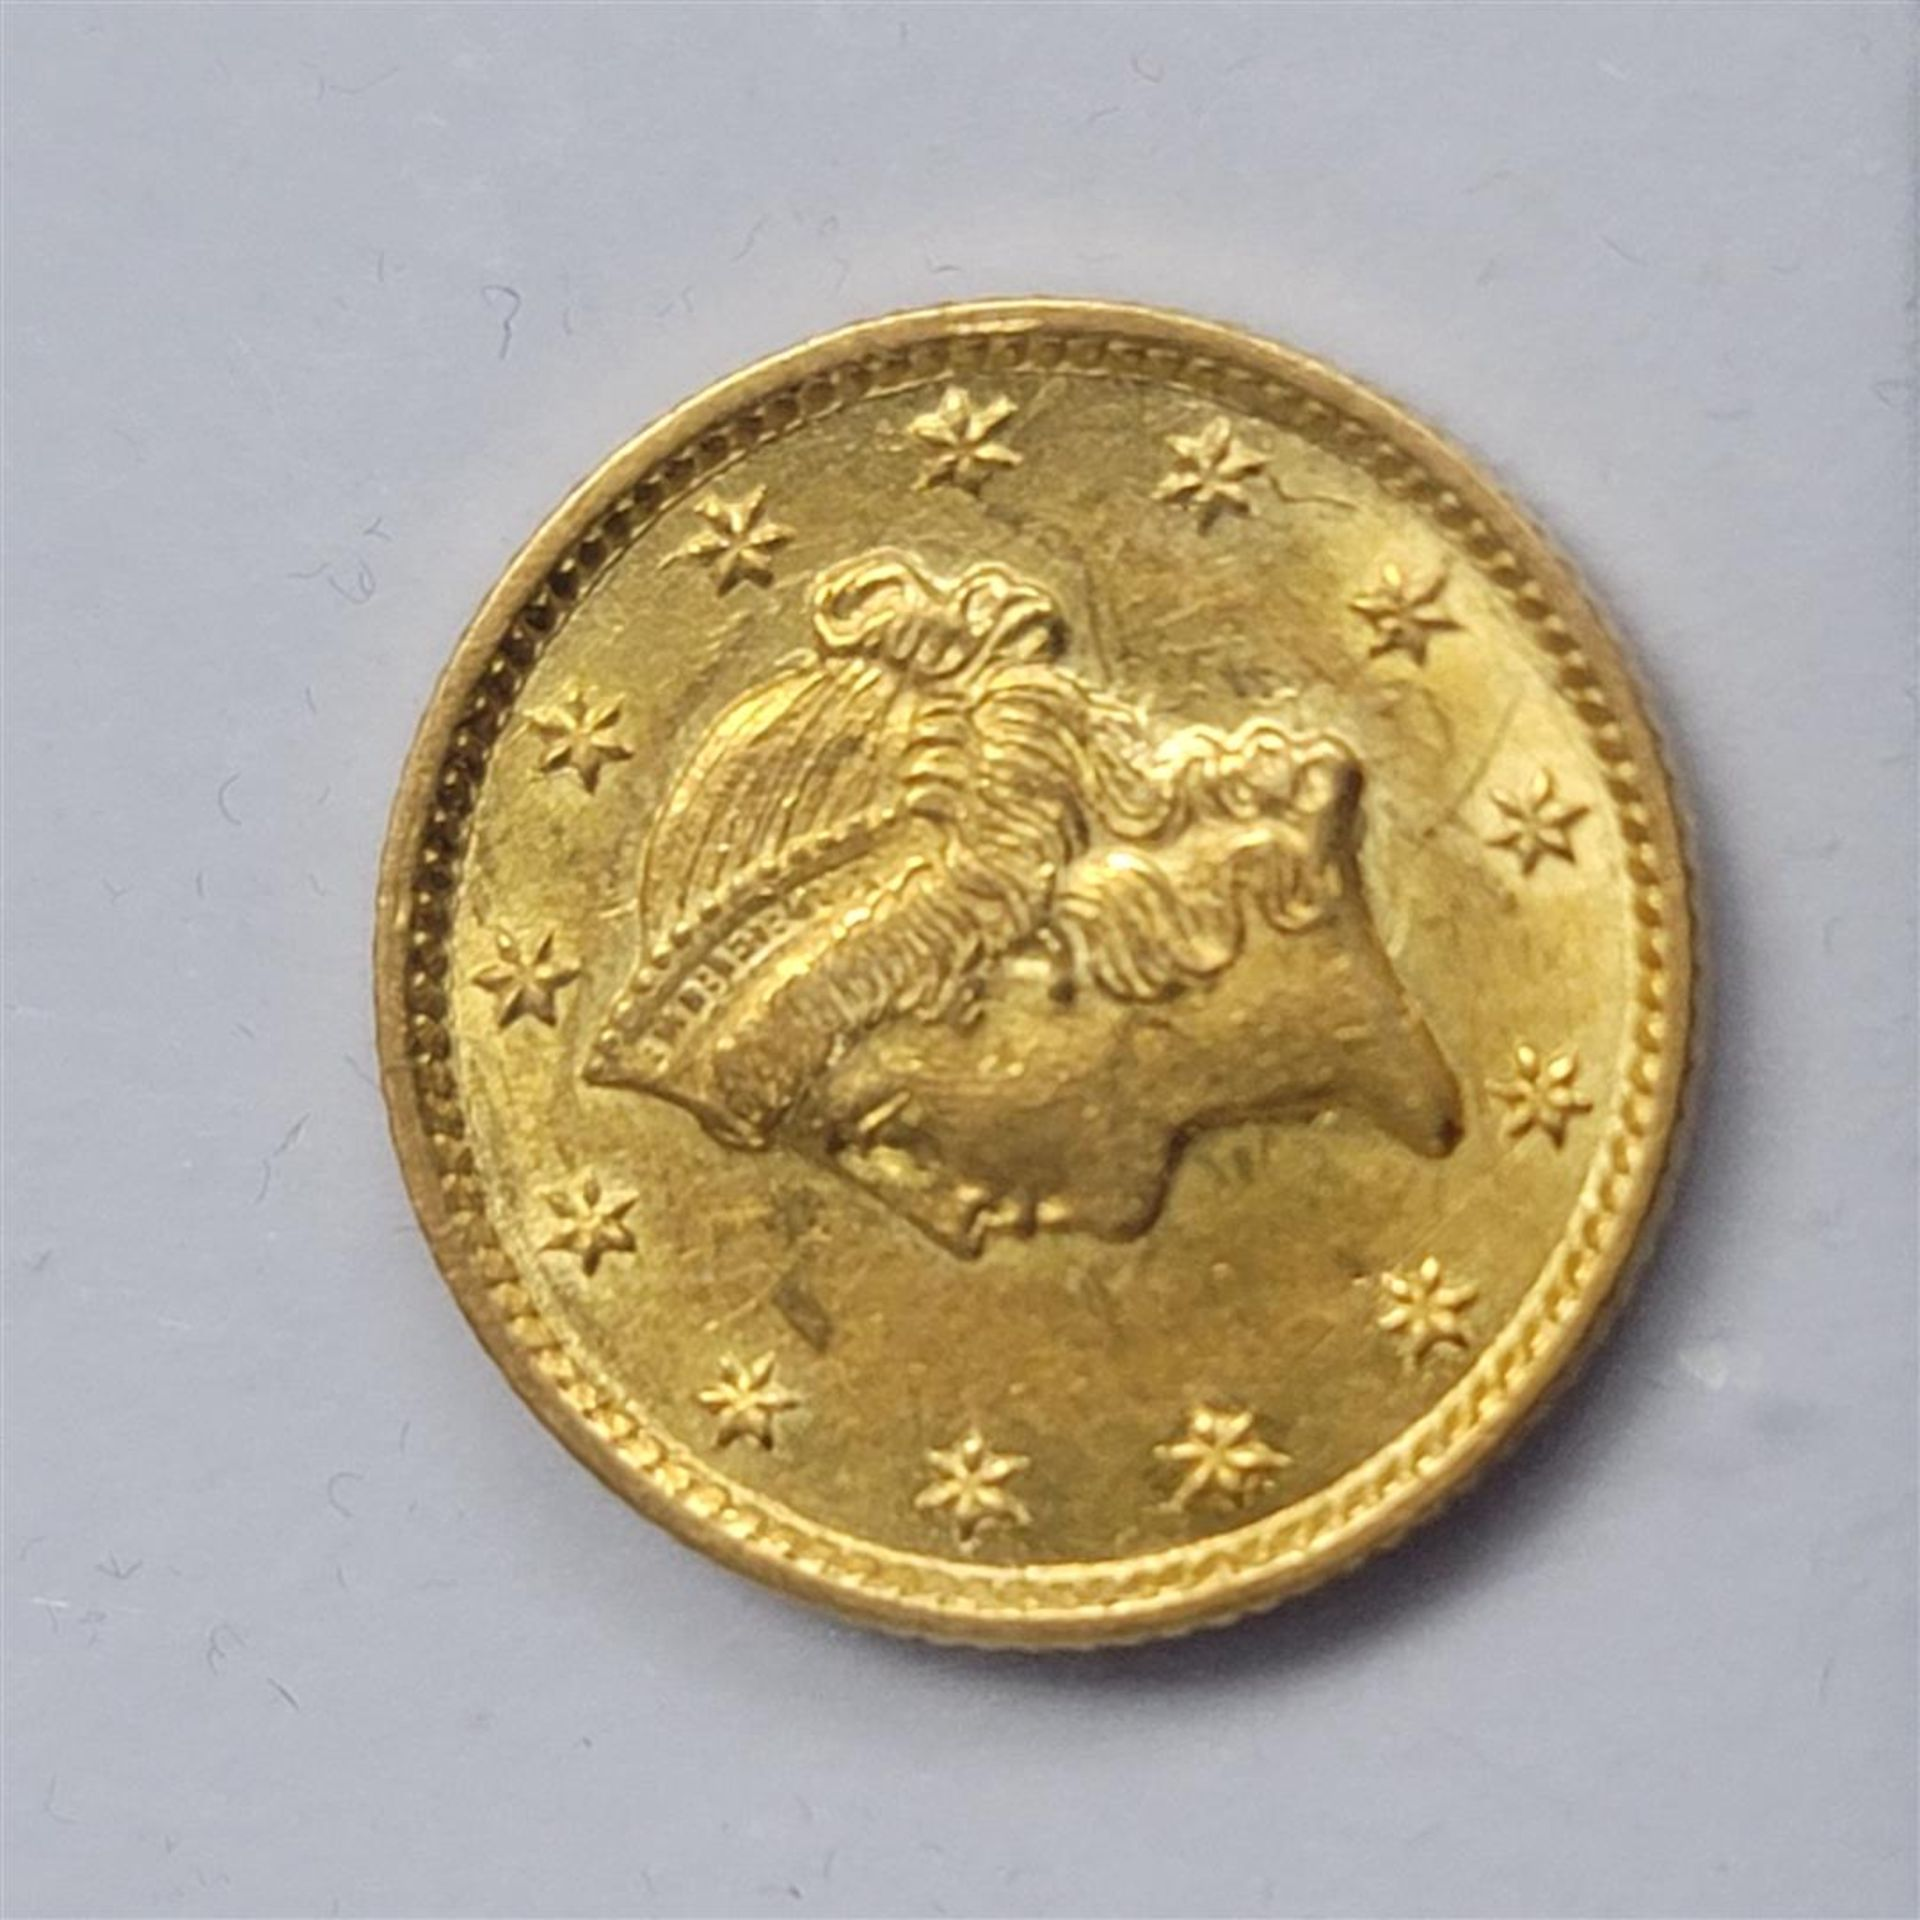 1854 $1 Gold Dollar Coin T-1 AU - Image 2 of 2